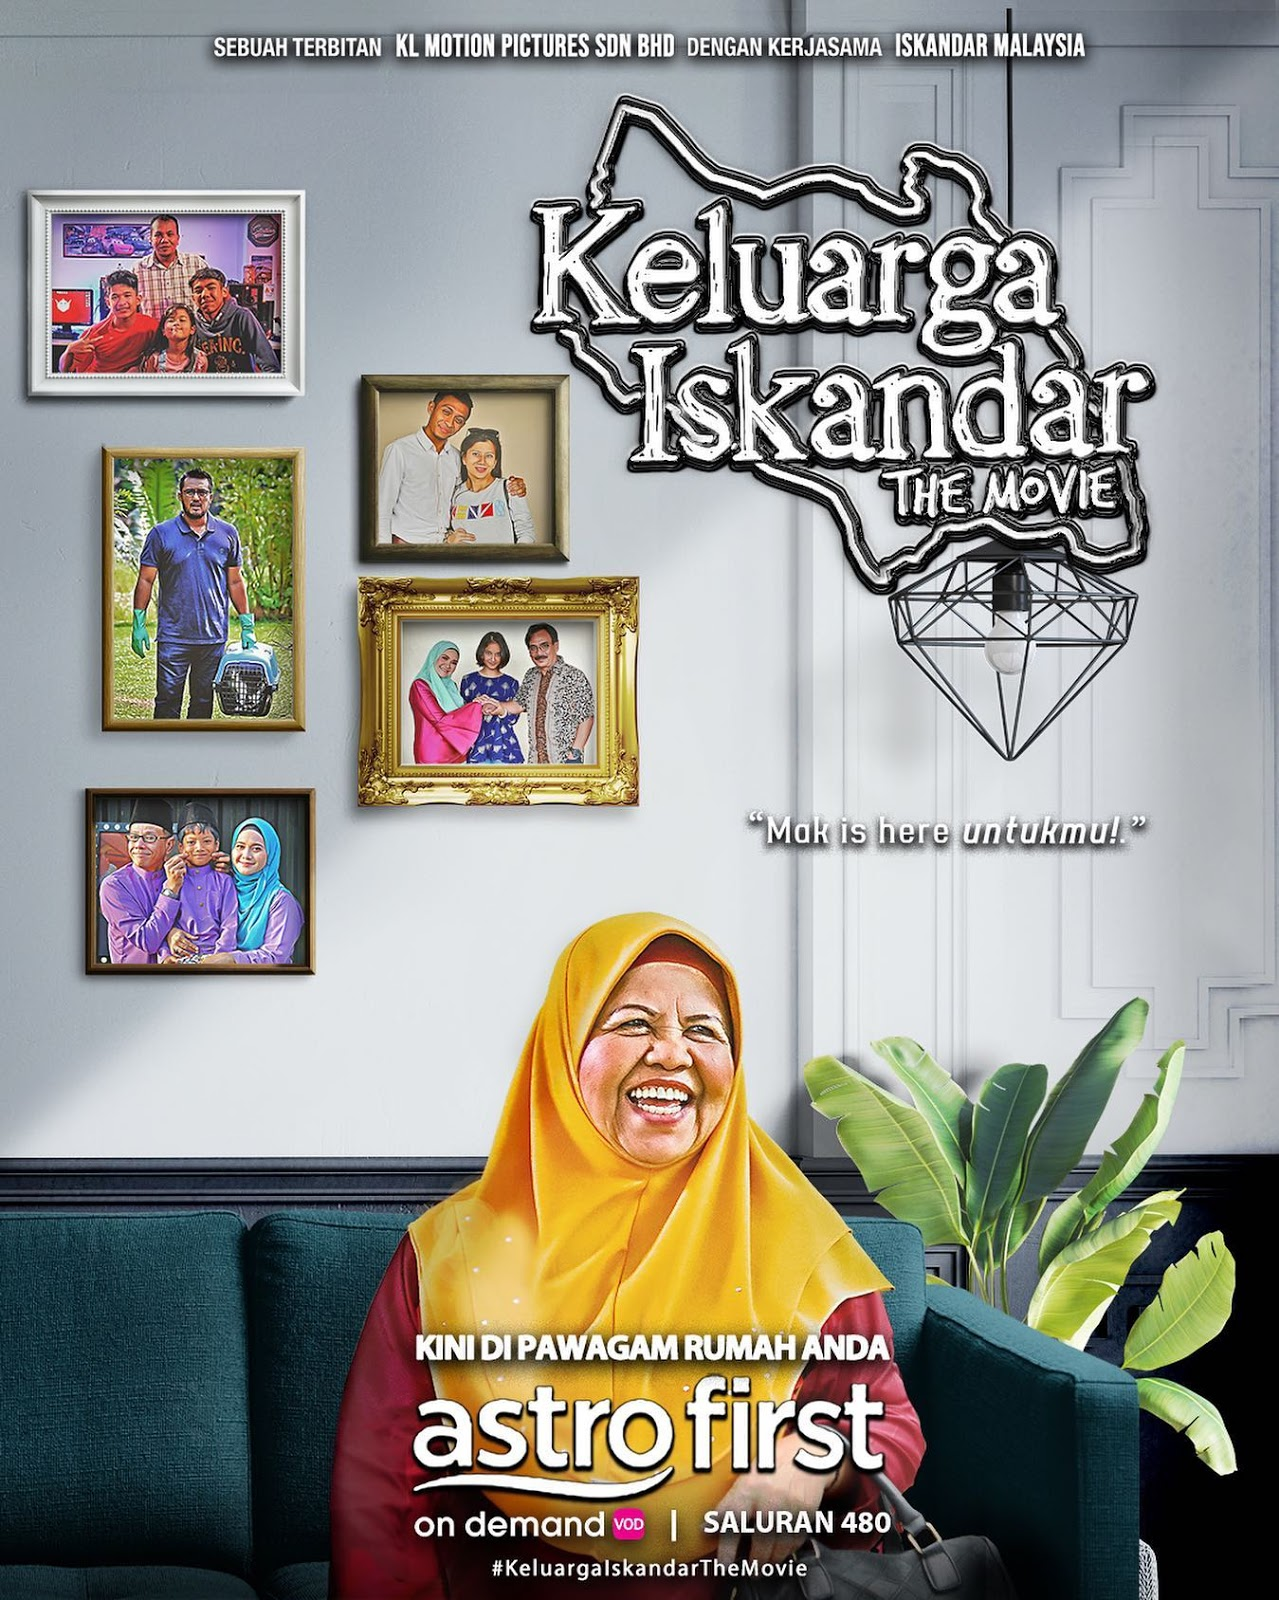 Keluarga Iskandar The Movie